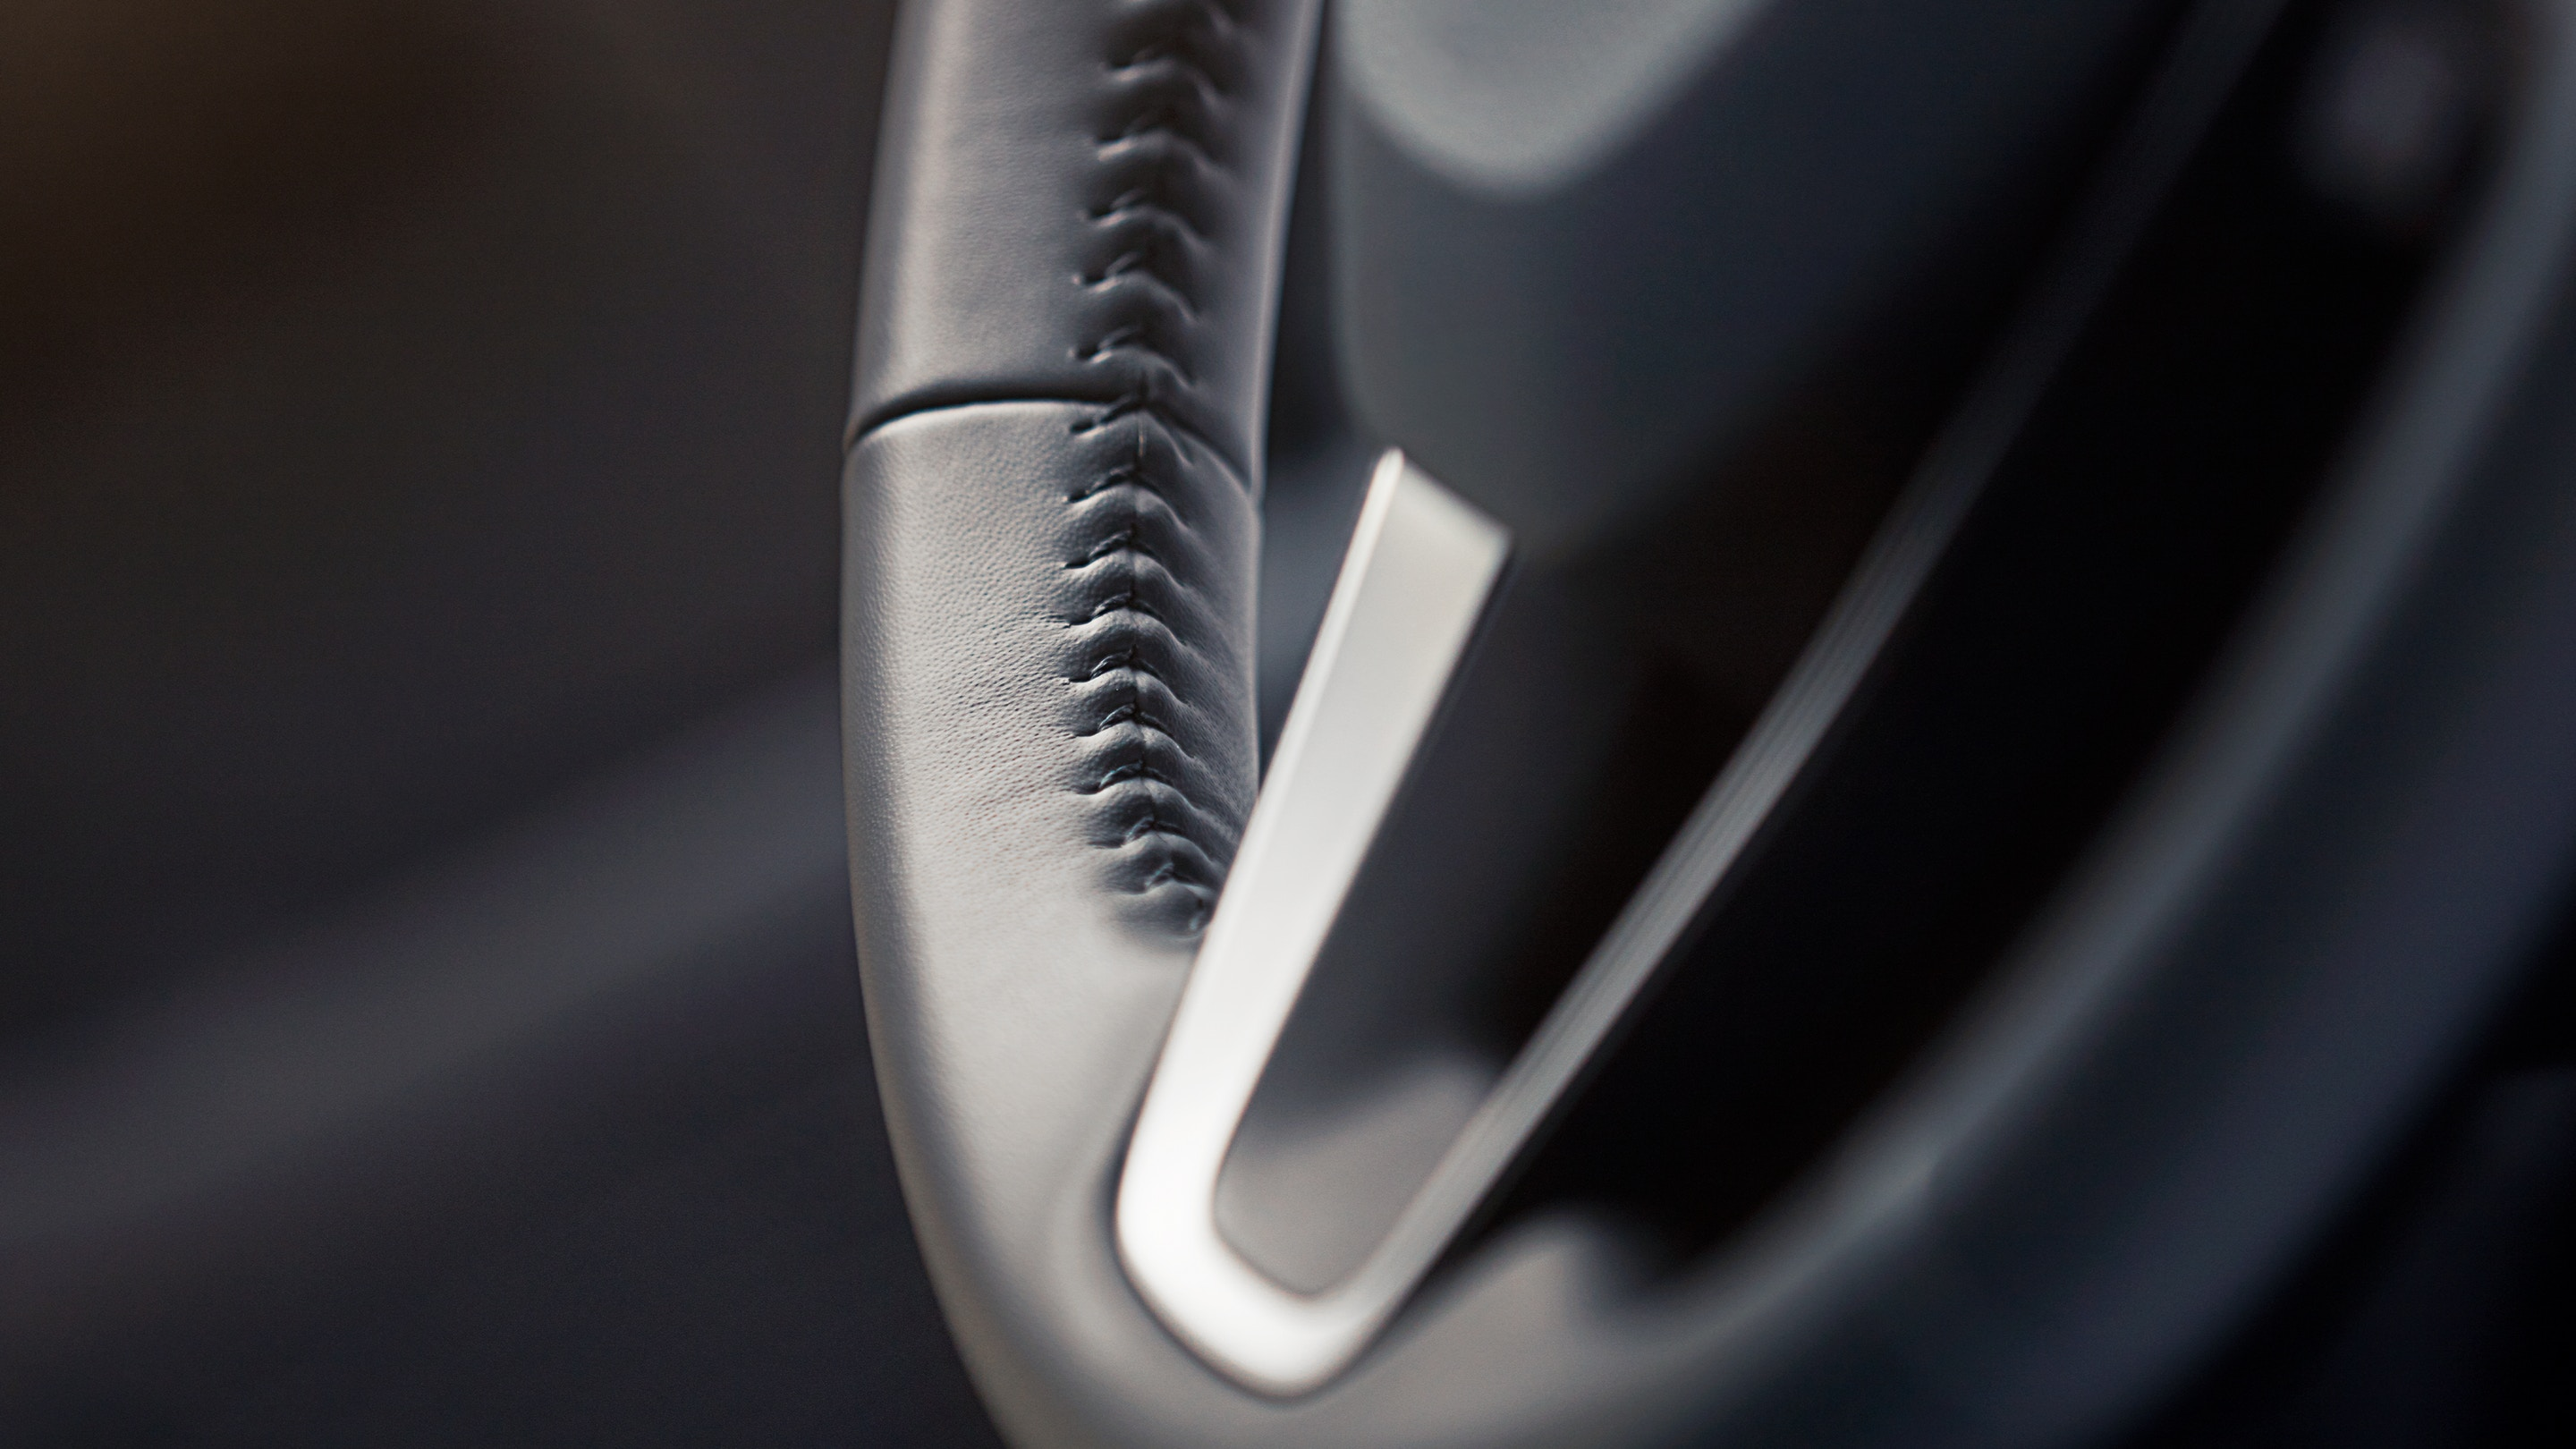 Leather-Wrapped Steering Wheel in the 2021 Corolla